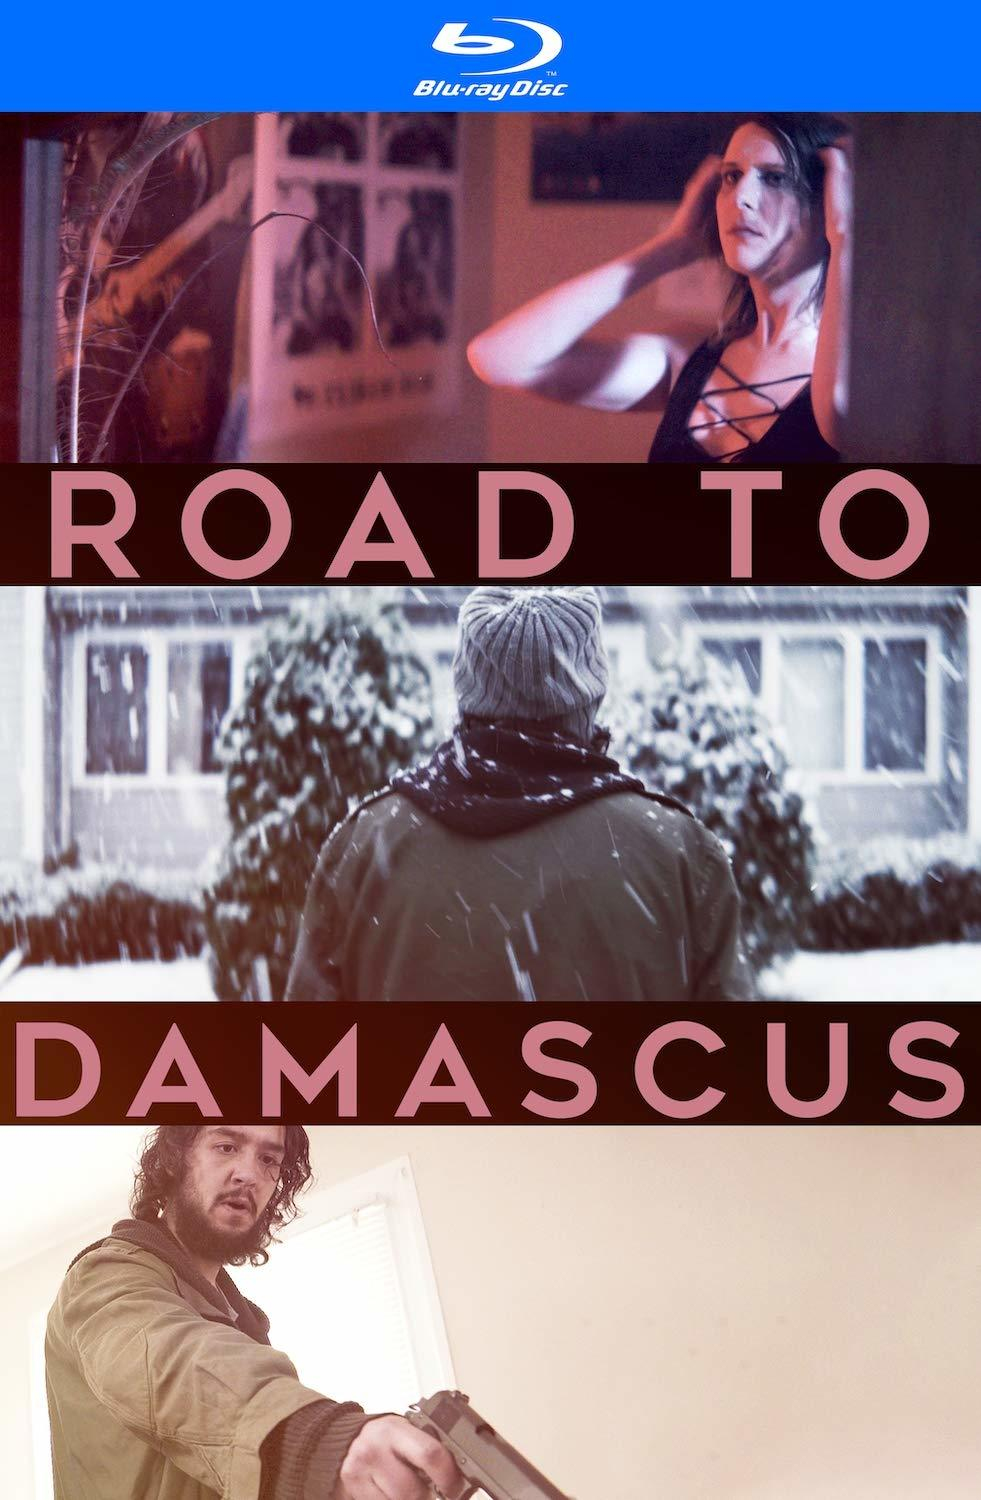 Road To Damascus (2021) WebRip 720p Dual Audio [Hindi (Voice Over) Dubbed + English] [Full Movie]